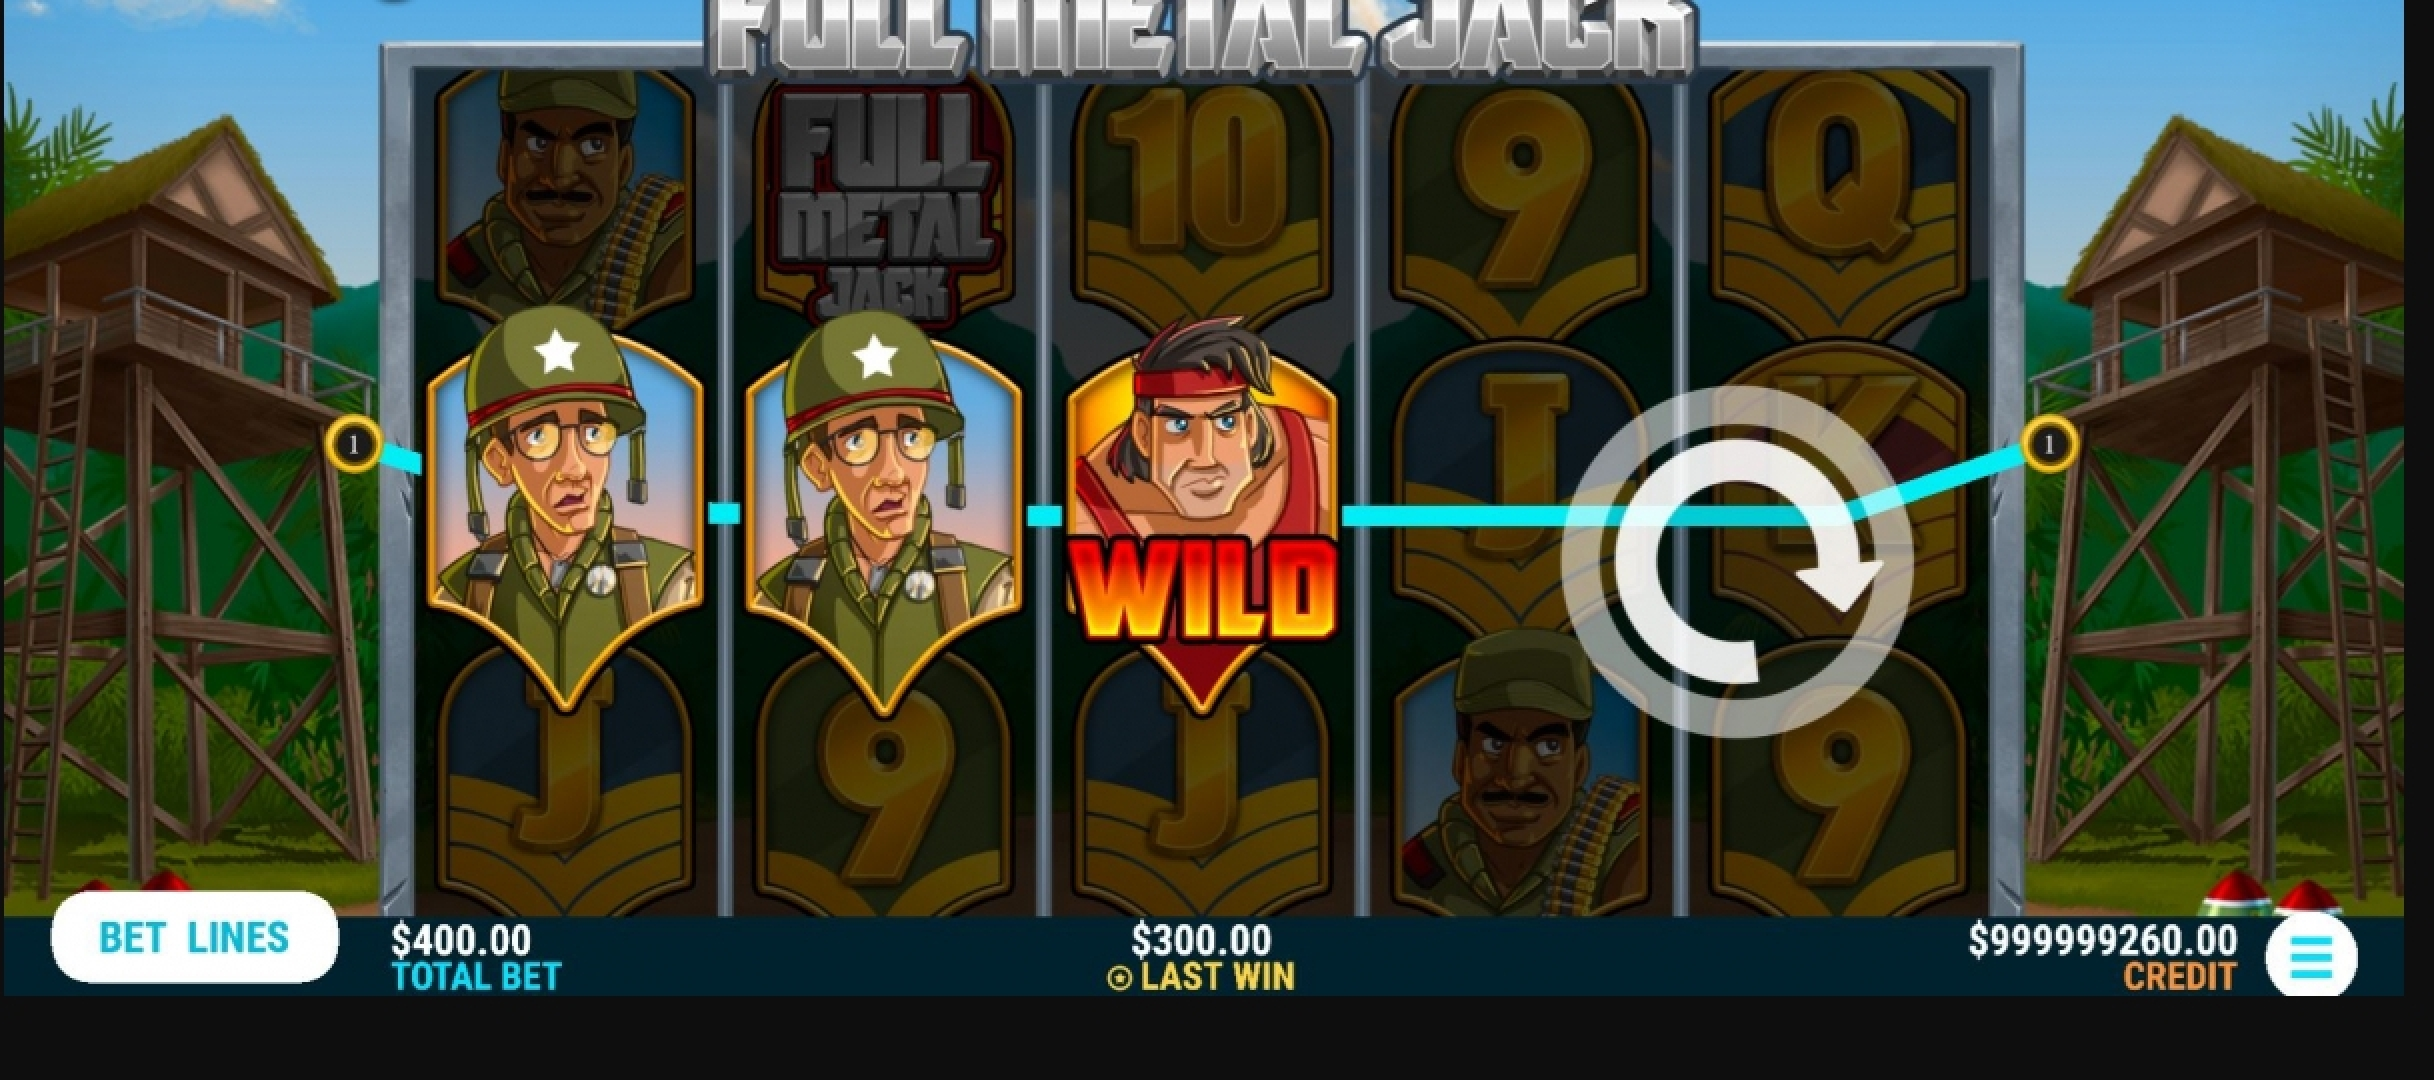 The Full Metal Jack Online Slot Demo Game by Slot Factory